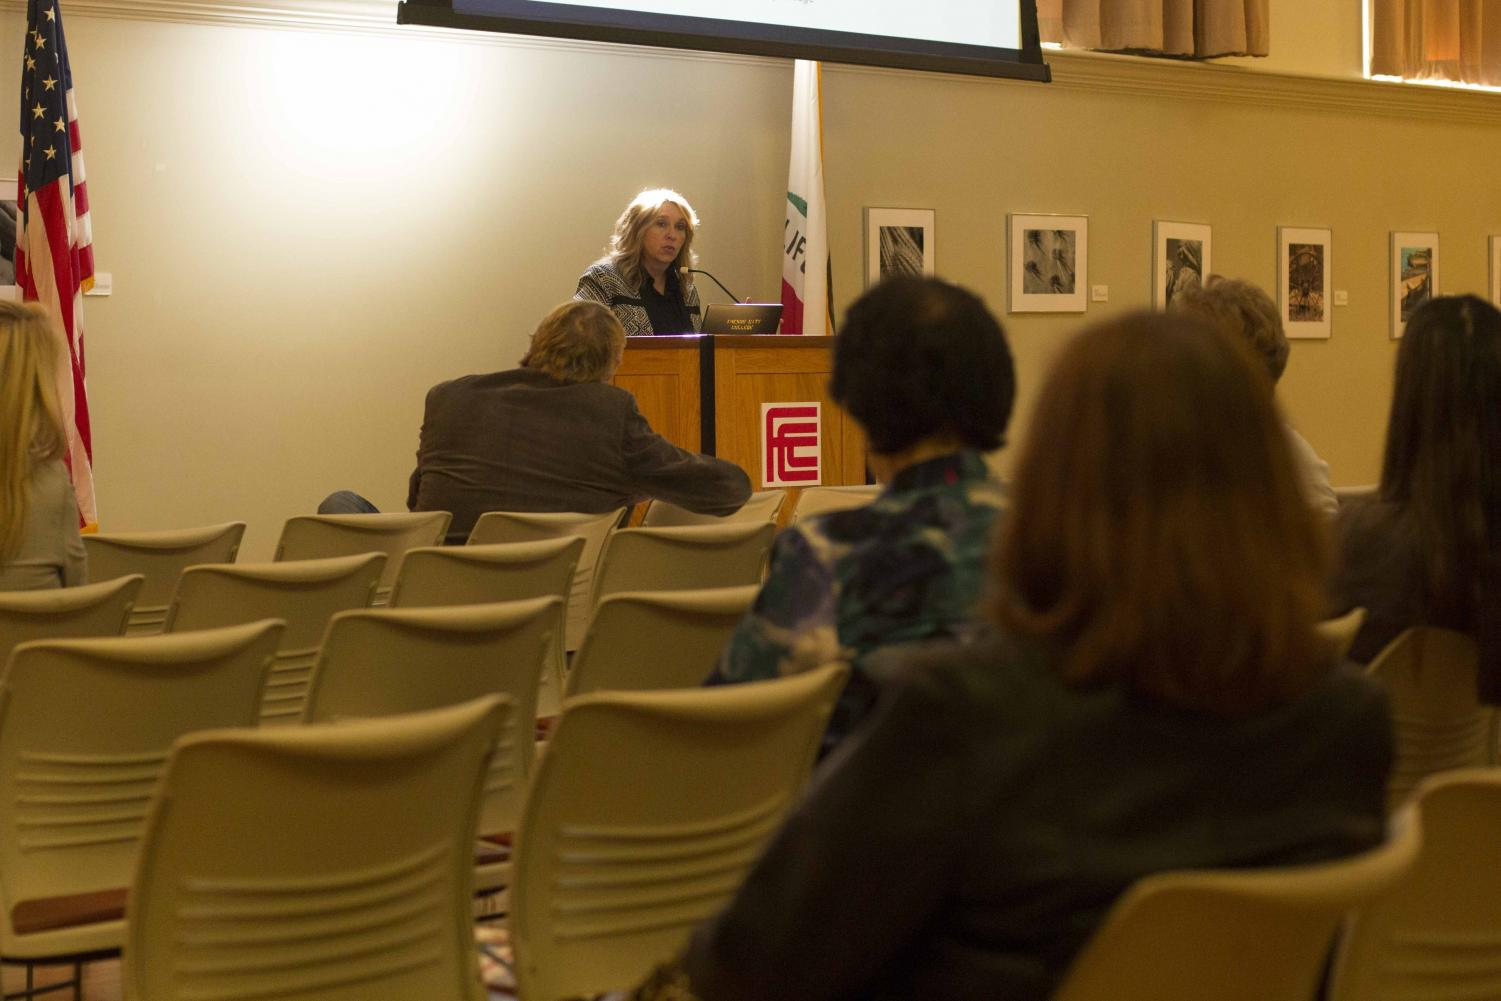 Fresno City College president Carole Goldsmith discusses the college's accreditation status during a meeting in the Old Administration Building on Thursday, Nov. 9, 2017.